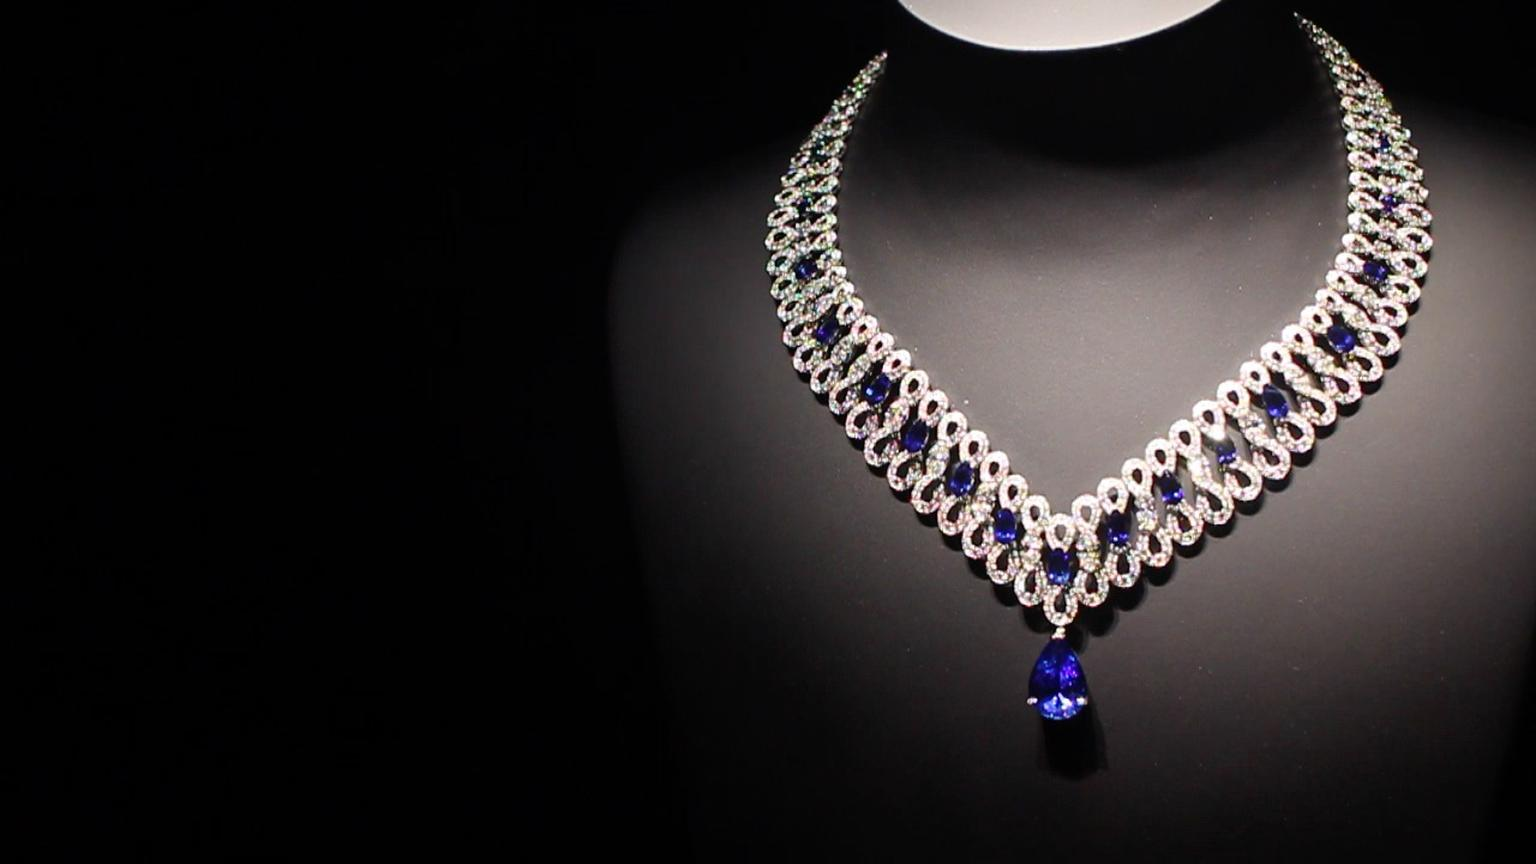 Extremely Piaget collection Infinity necklace with diamonds intertwining like ribbon underneath pear-shaped sapphires and diamonds leading to a dangling sapphire pear-shaped drop.